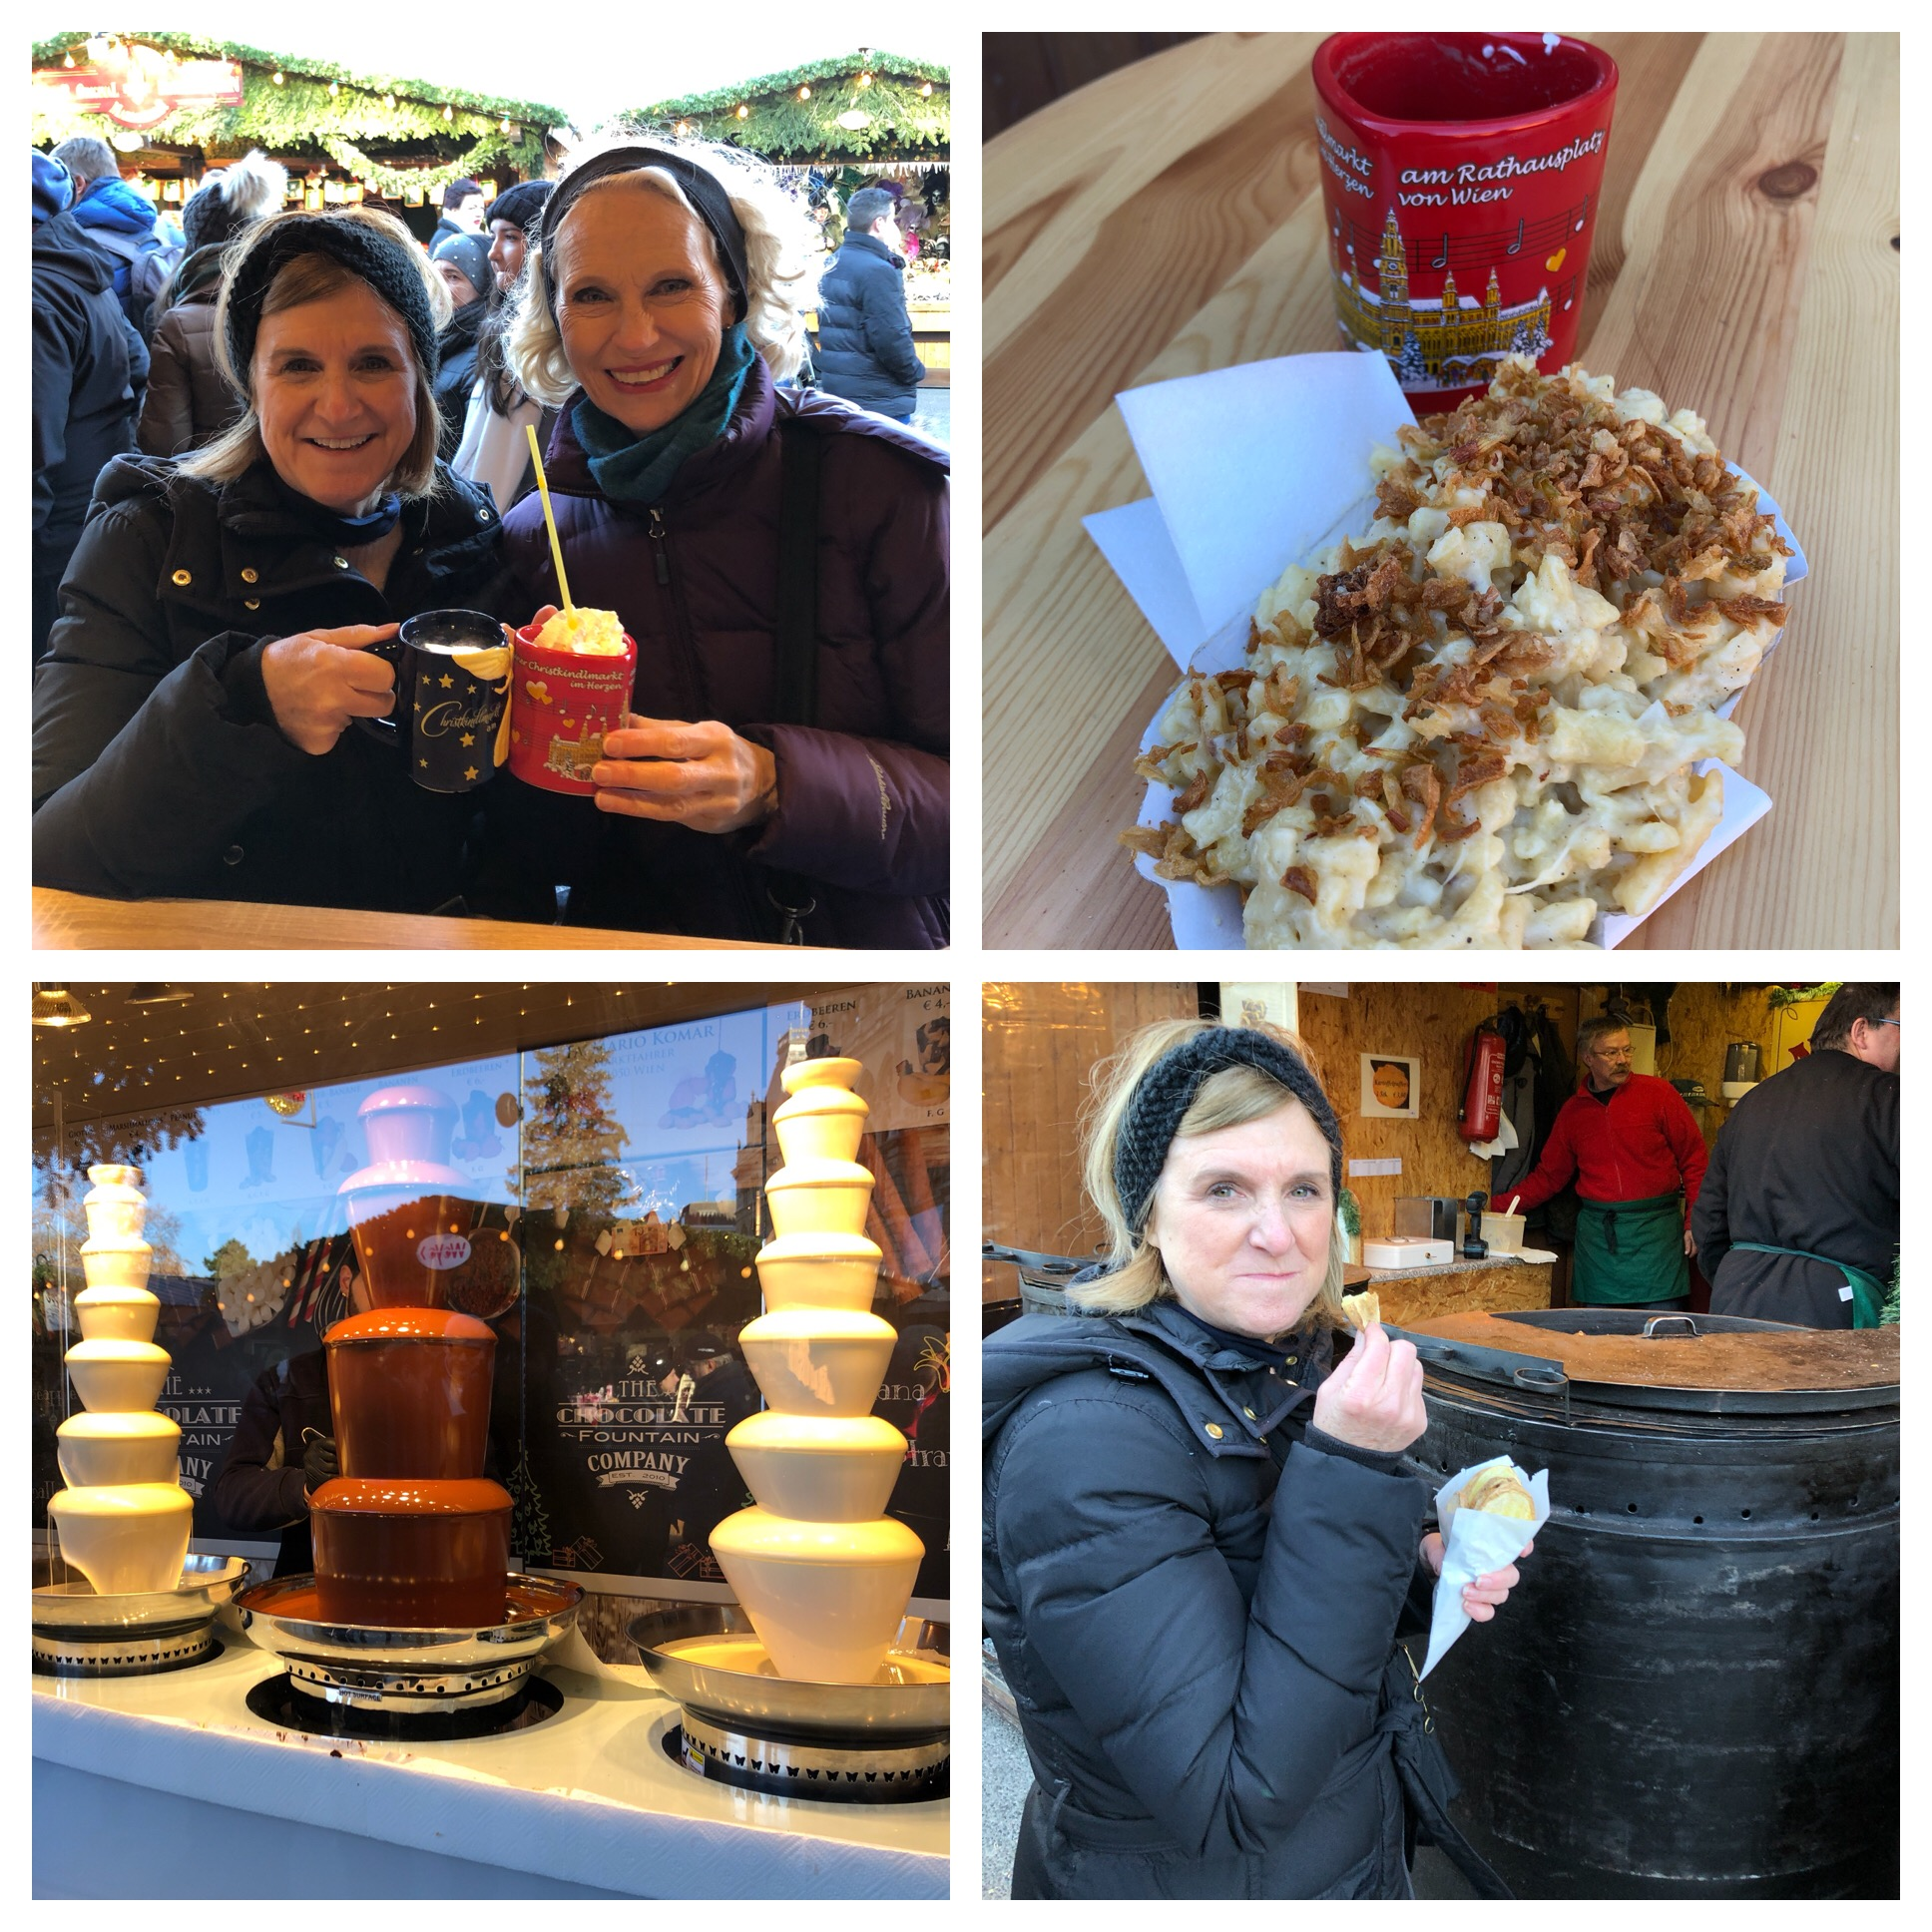 Top right was lunch. We shared spaetzle with cheese and fried onions - Yumm! Bottom right is Cheryl having a potato wedge snack and bottom left - a chocolate fondue booth.